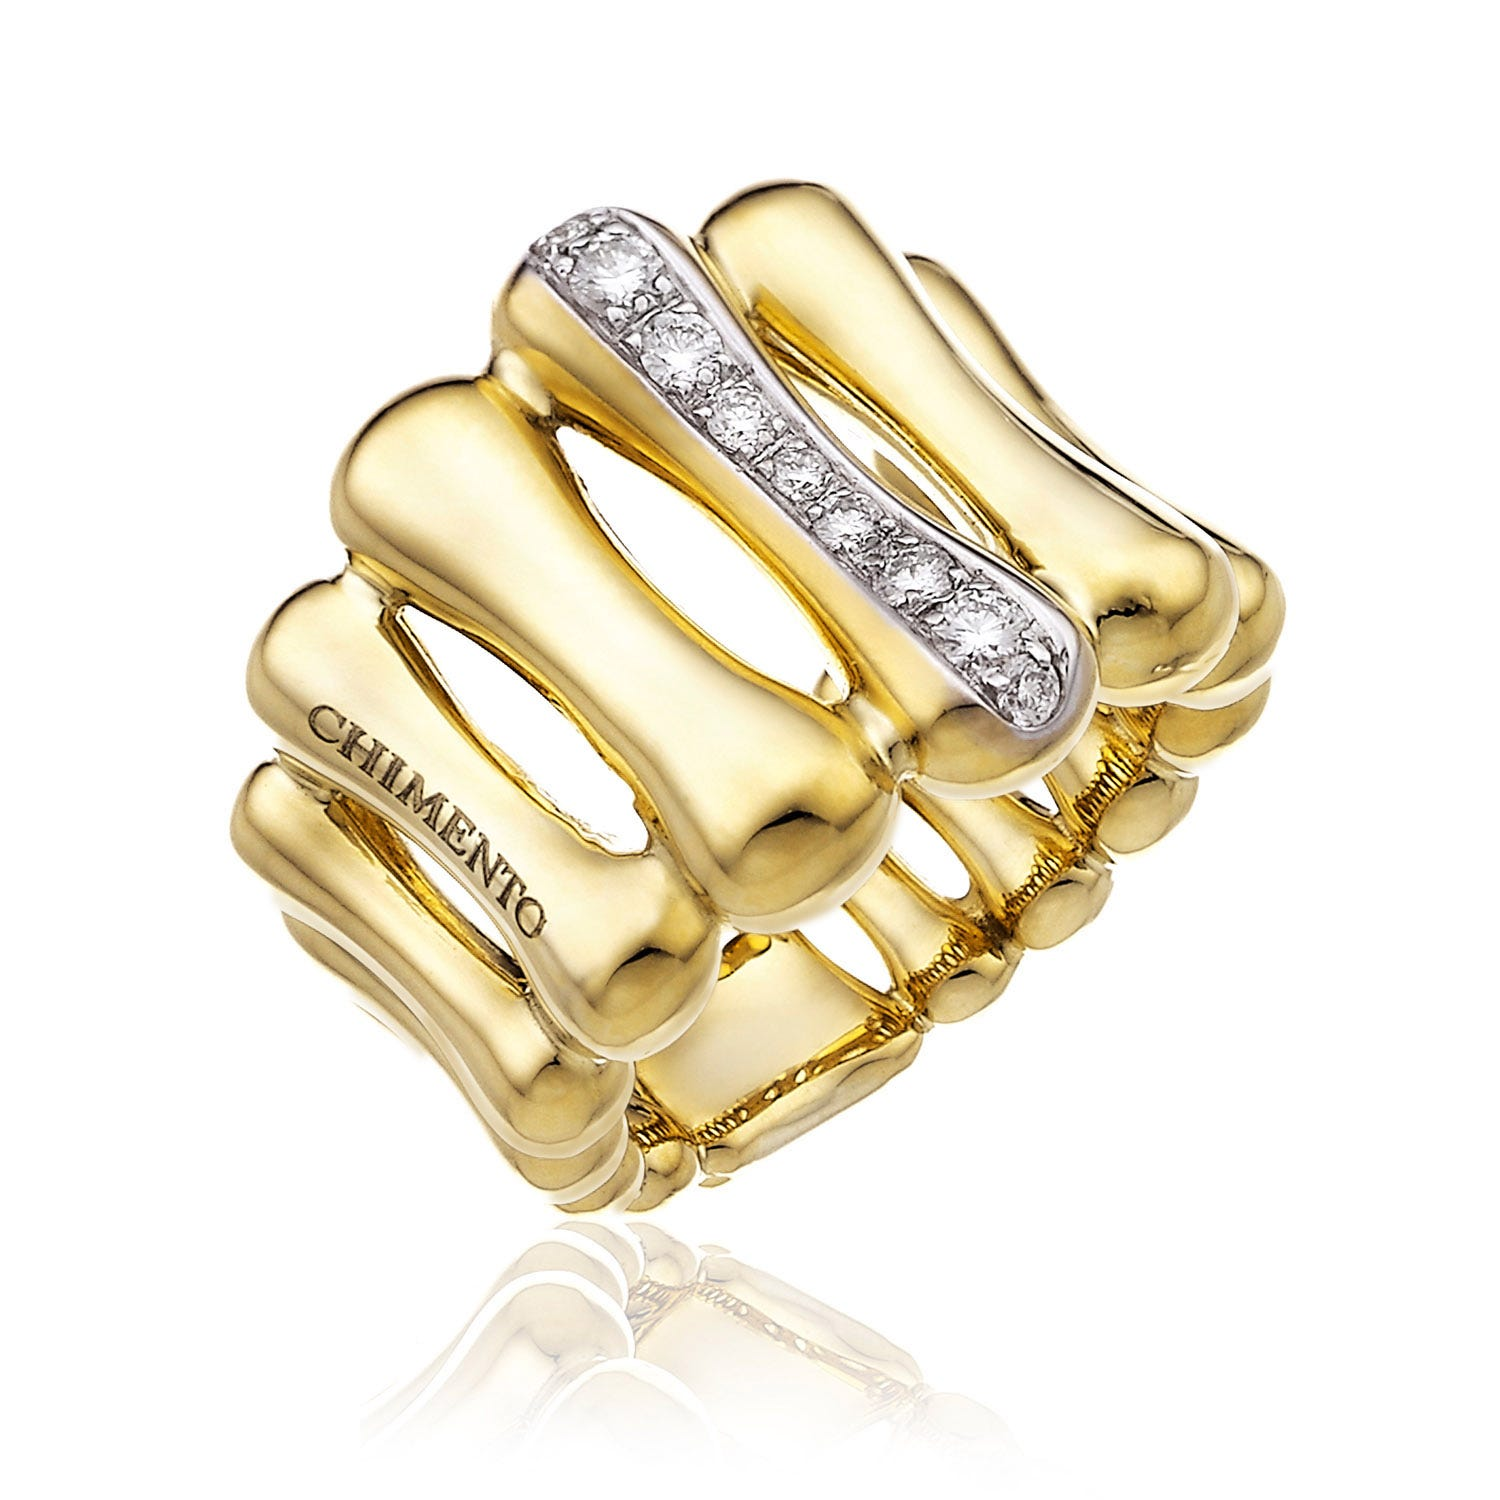 Chimento 18ct Yellow Gold and Diamond Bamboo Collection Ring